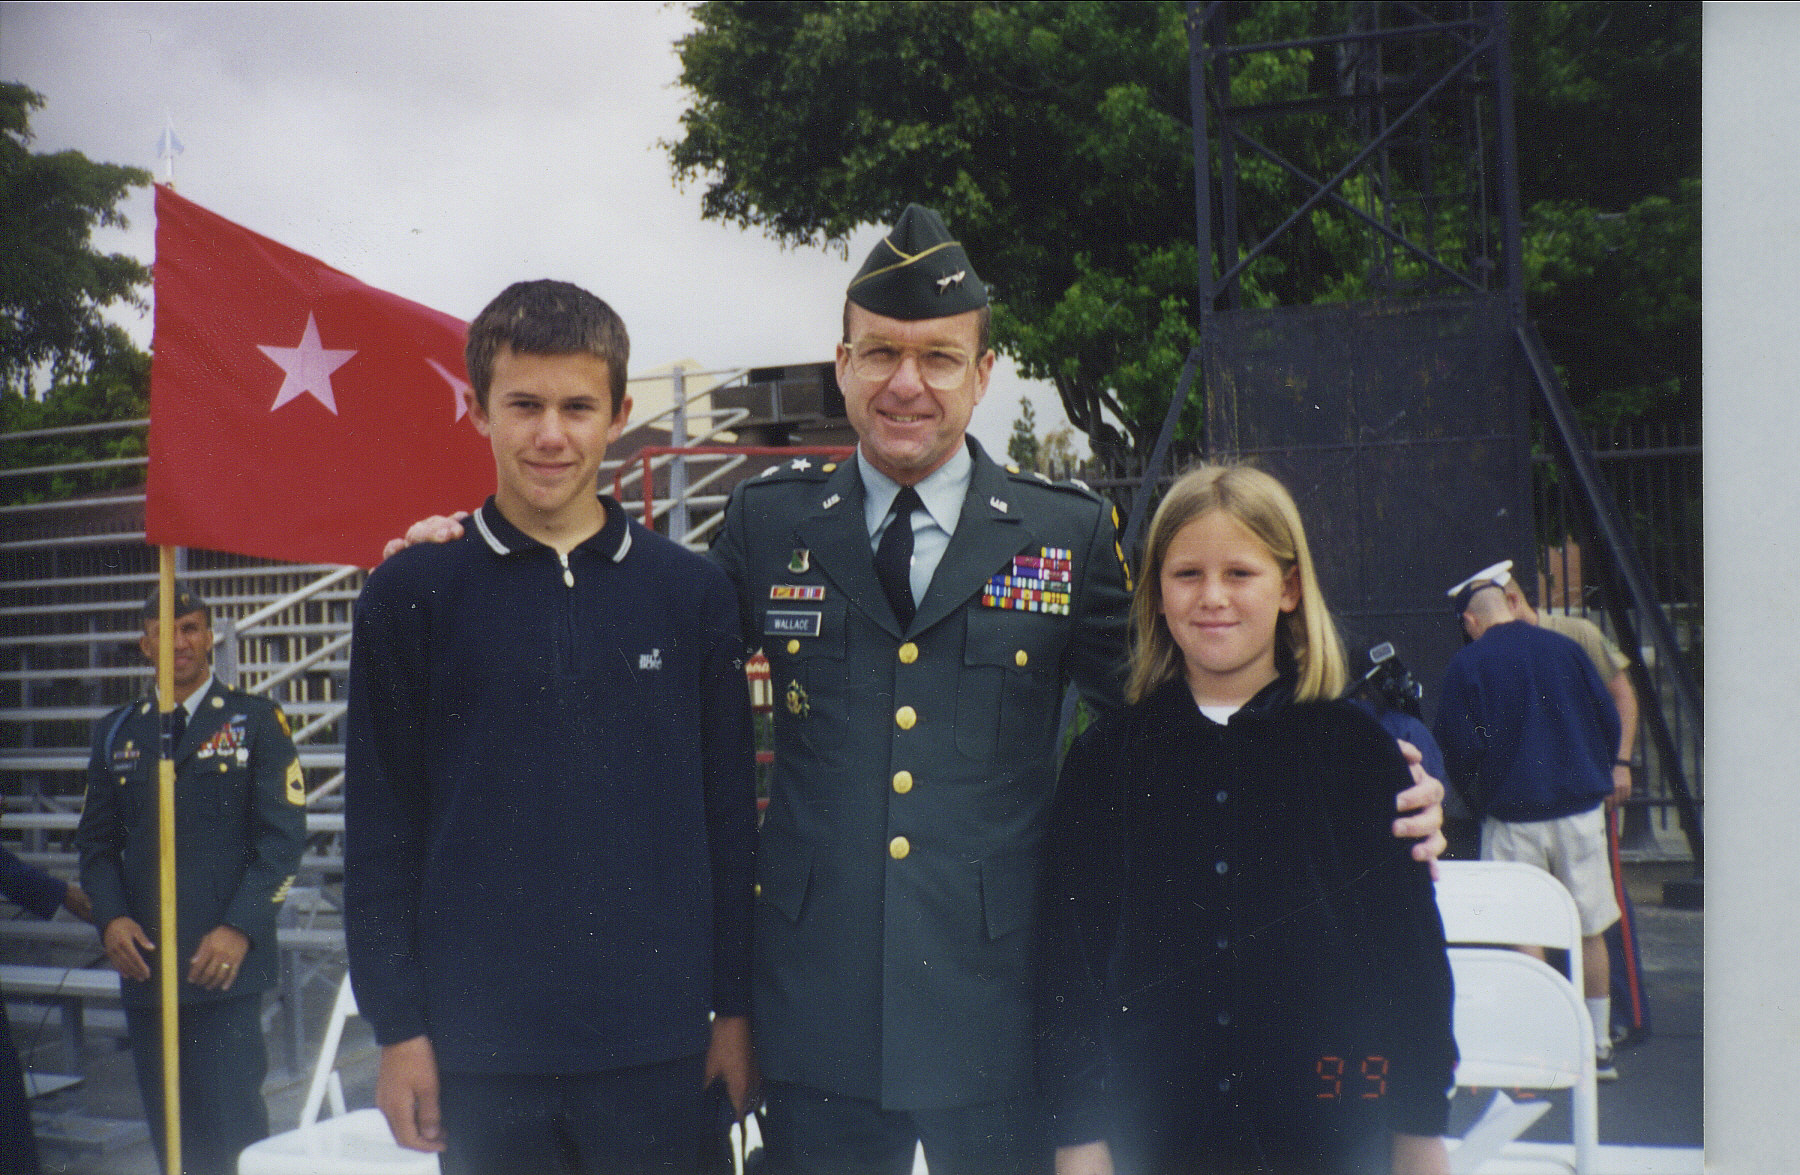 Jonathan J. Holmes, Major General Wallace, Kimberly E. Holmes, at USC Univ ROTC Cadet Graduation, 1999